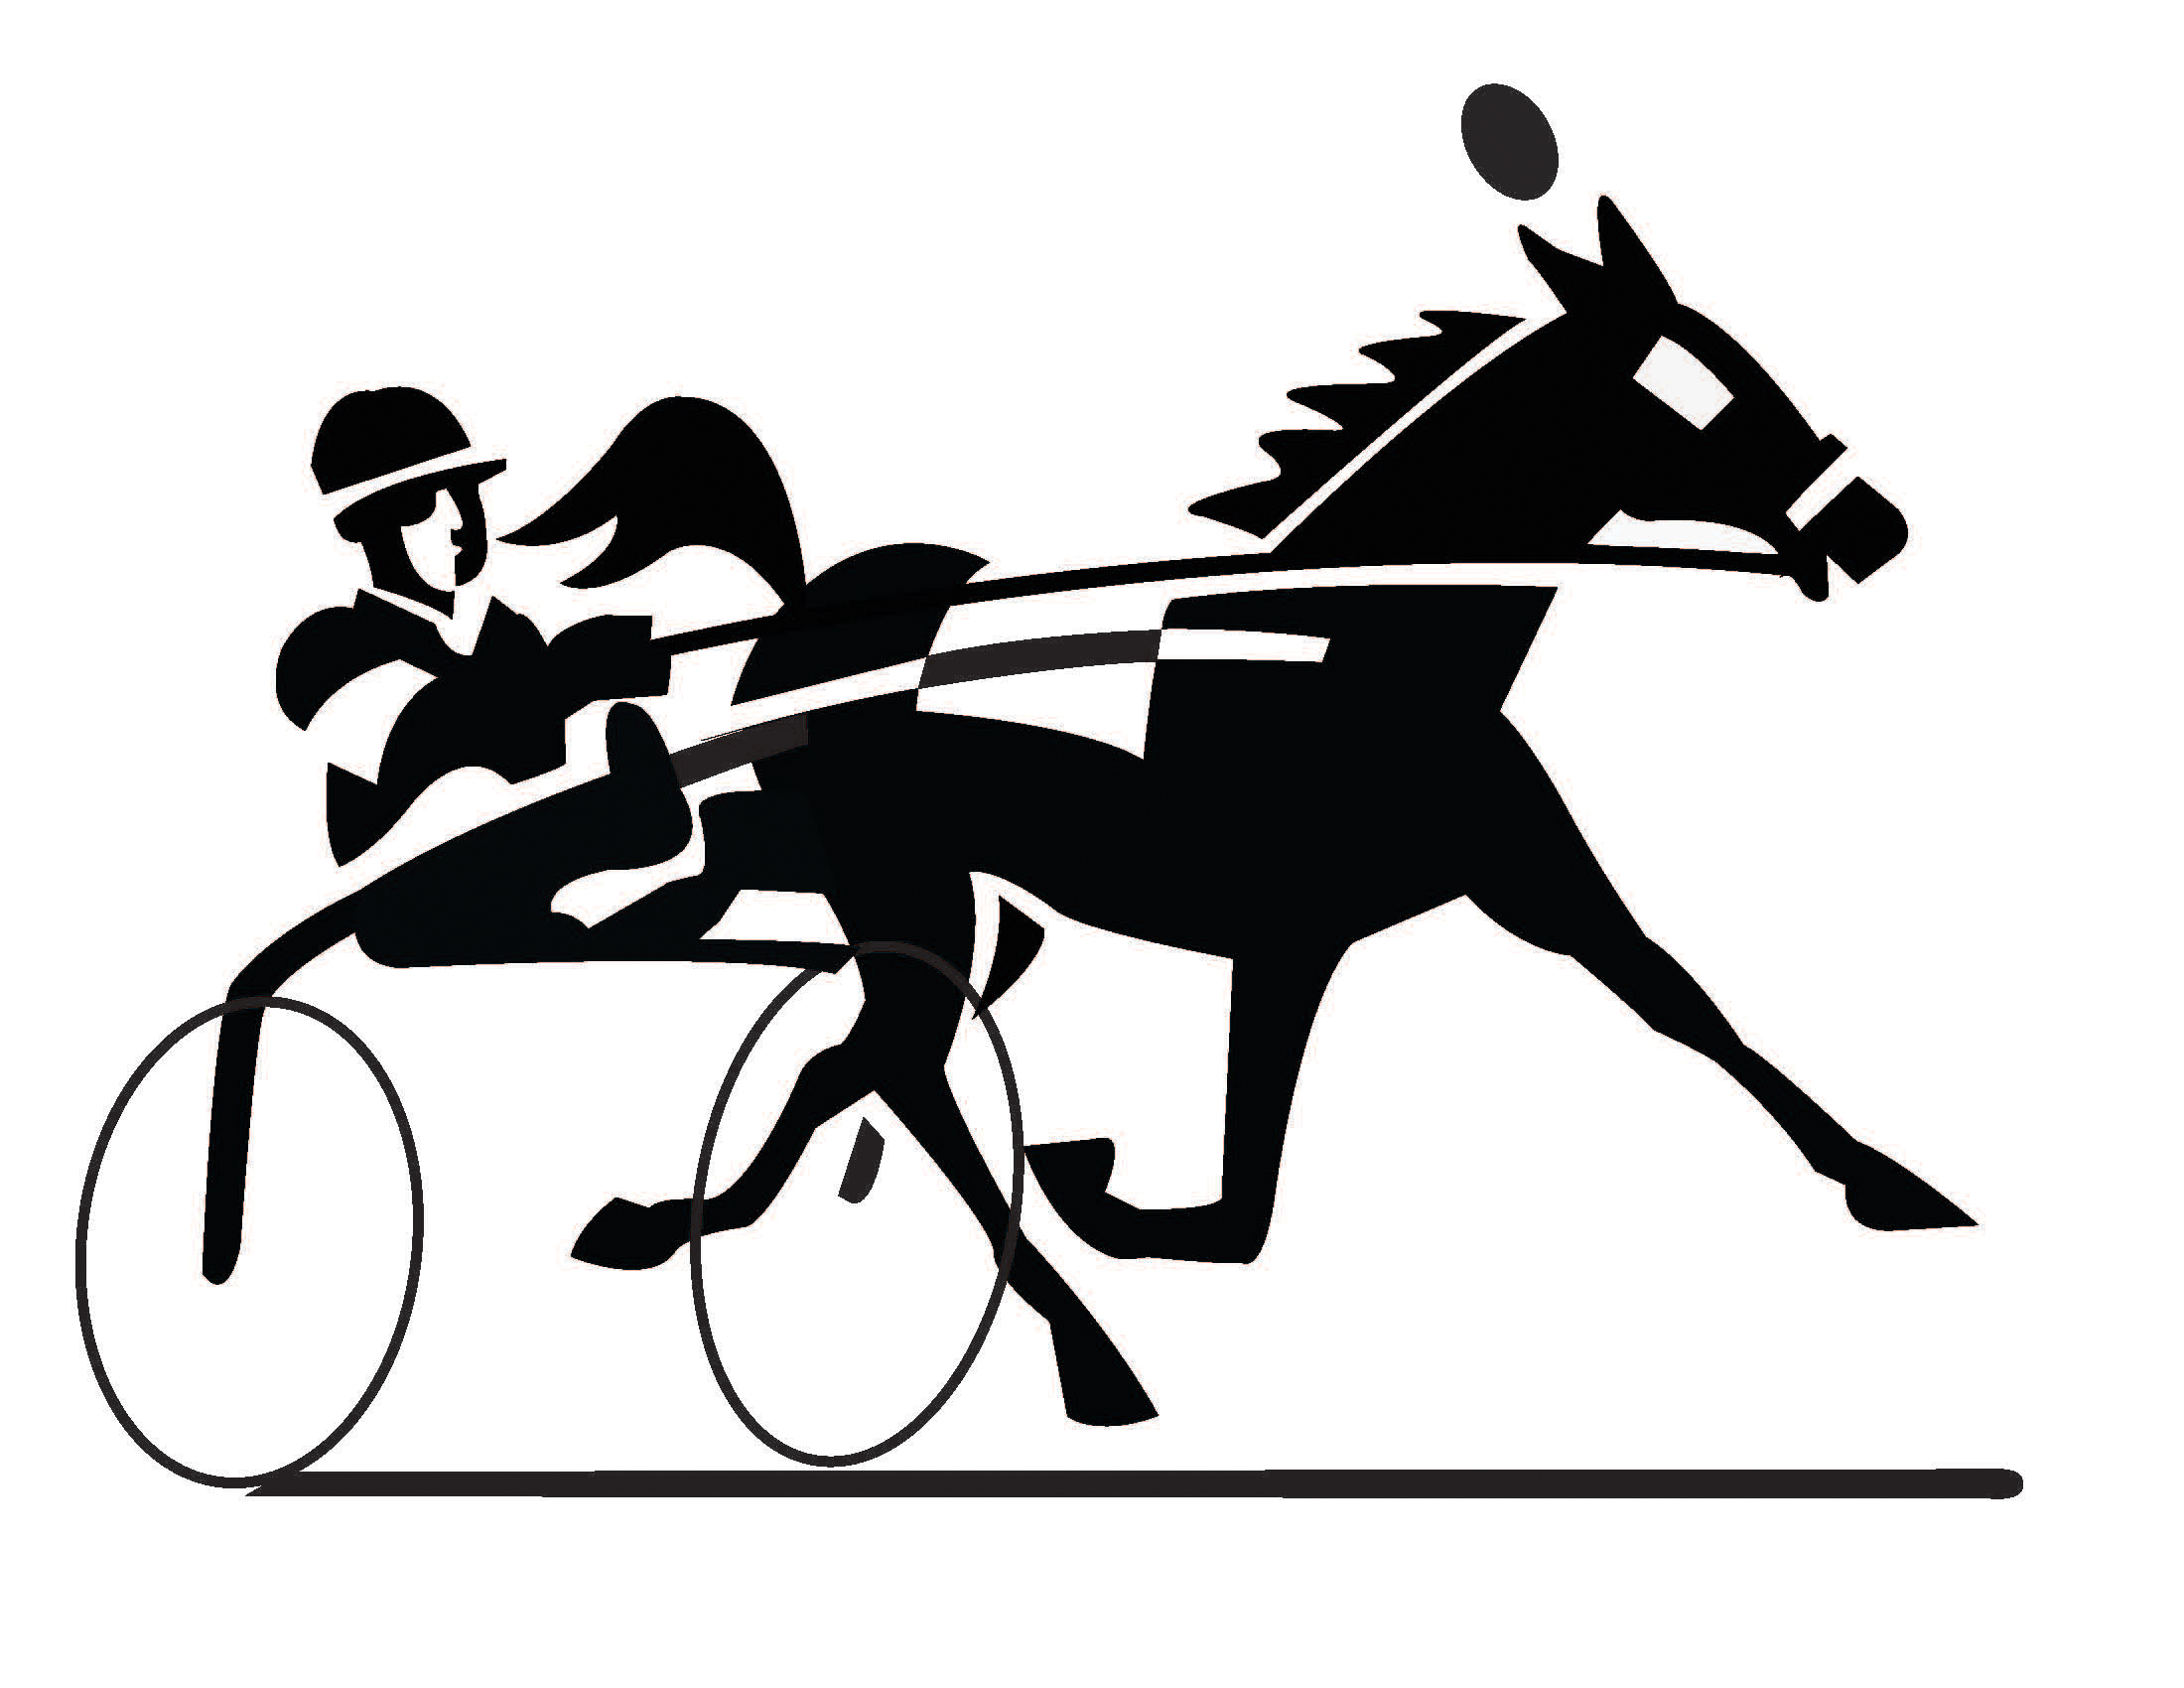 Horse harness clipground wnyhha. Clipart flames racing